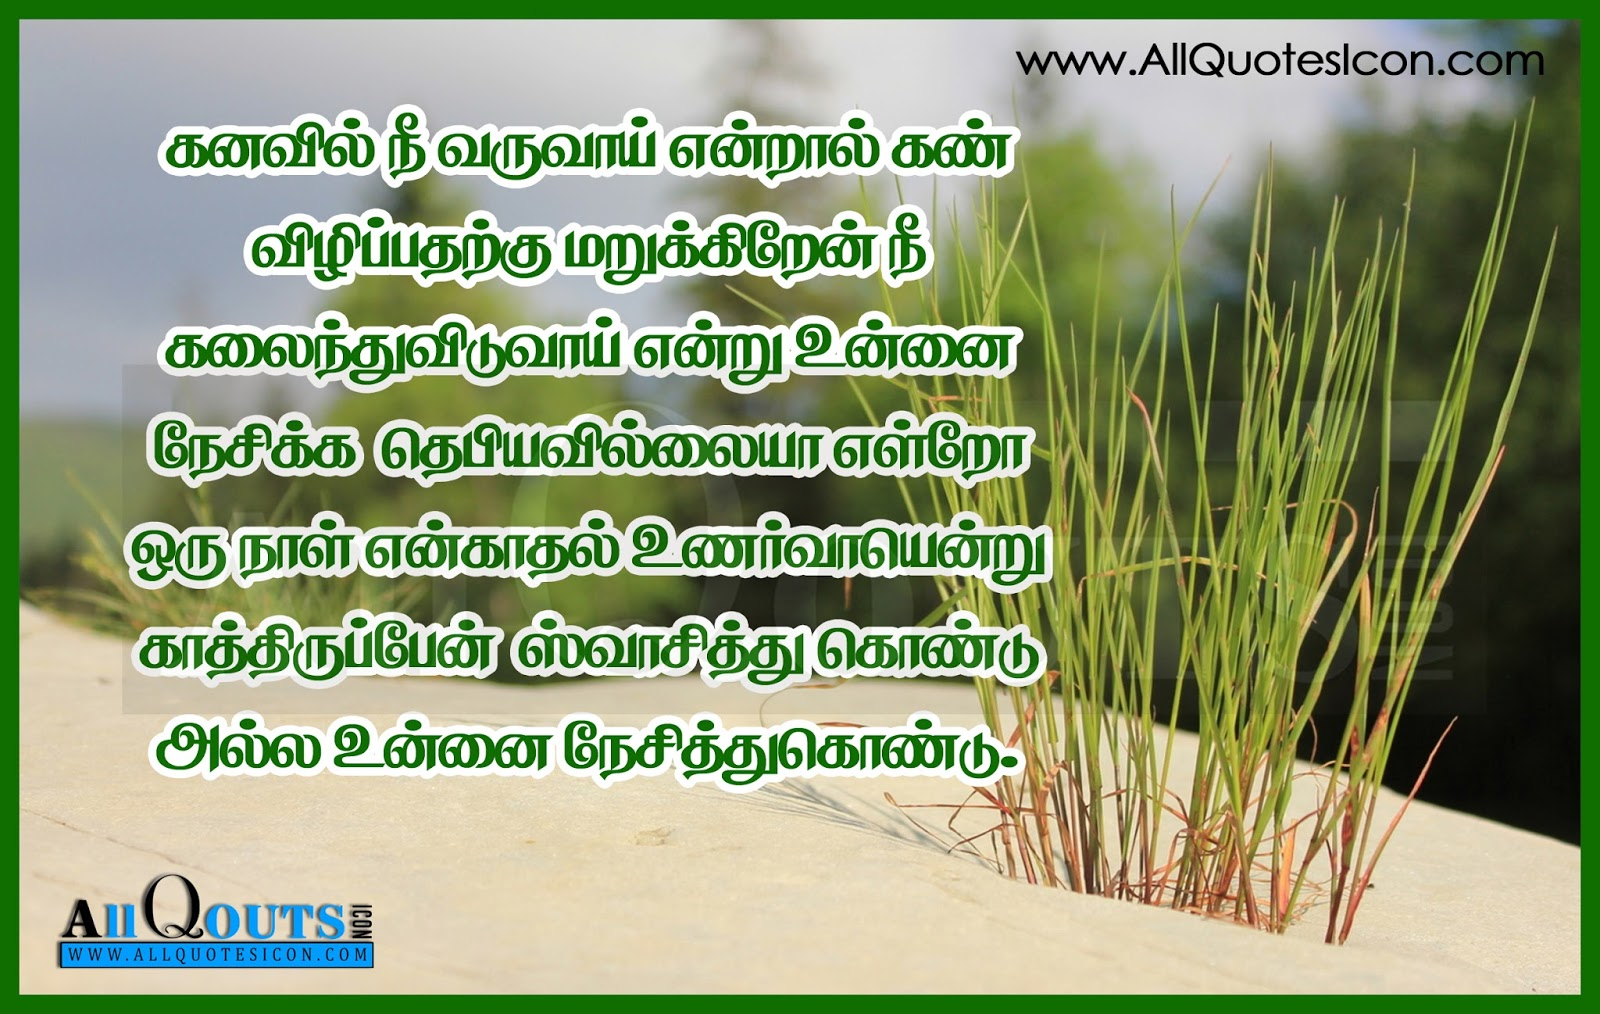 Best Life Quotes in Tamil Pictures Beautiful Tamil